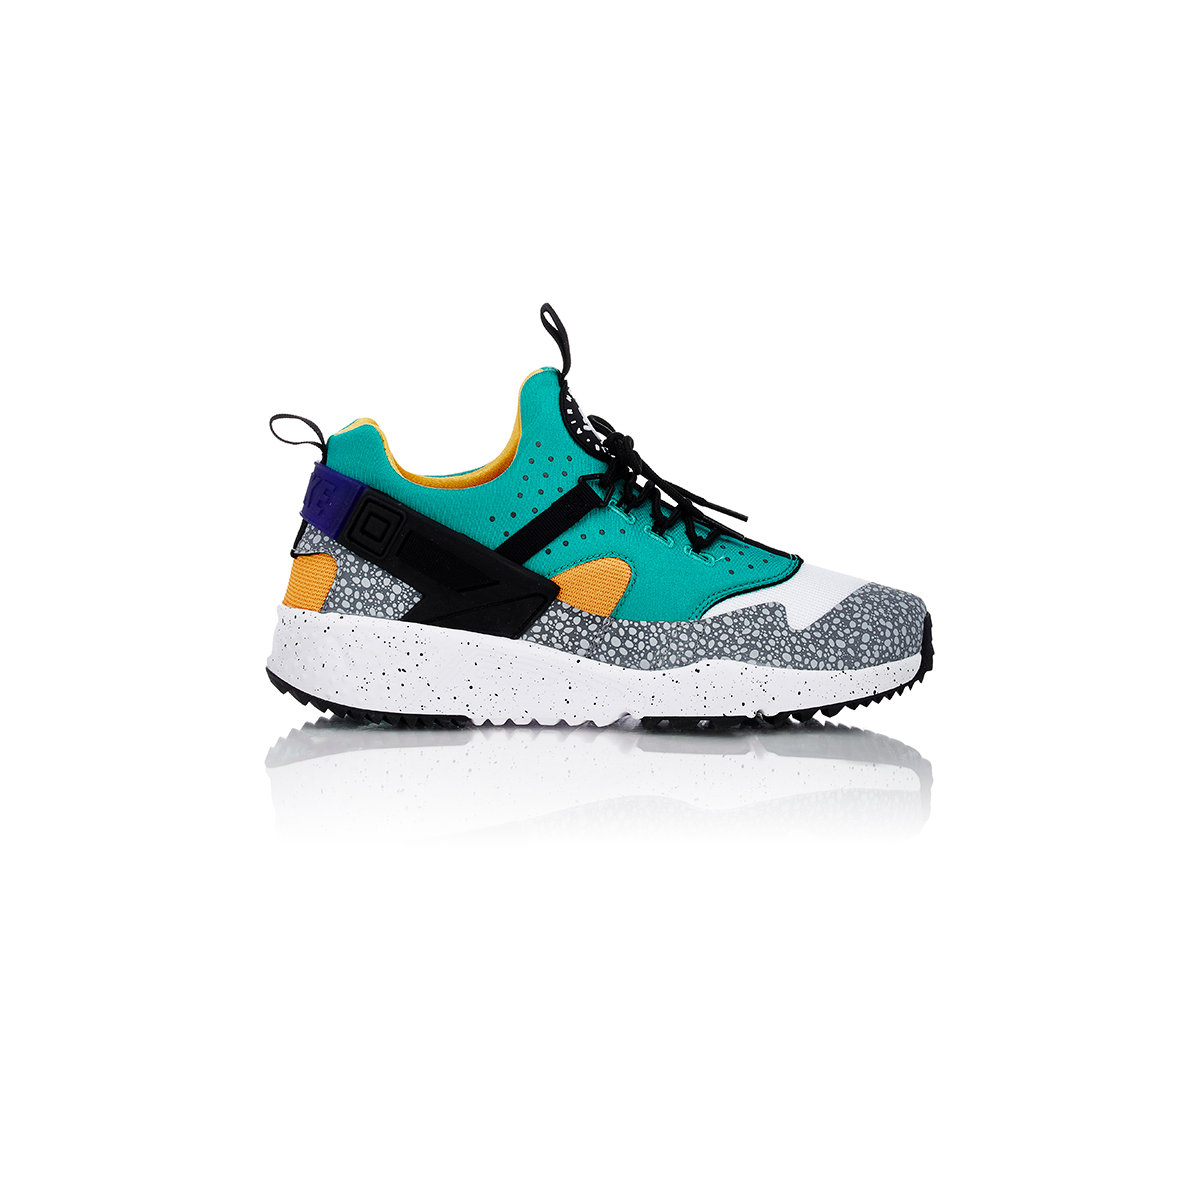 c8b9d43d9eb6 low cost lyst nike air huarache utility premium sneakers in green for men  2b25a 7b068